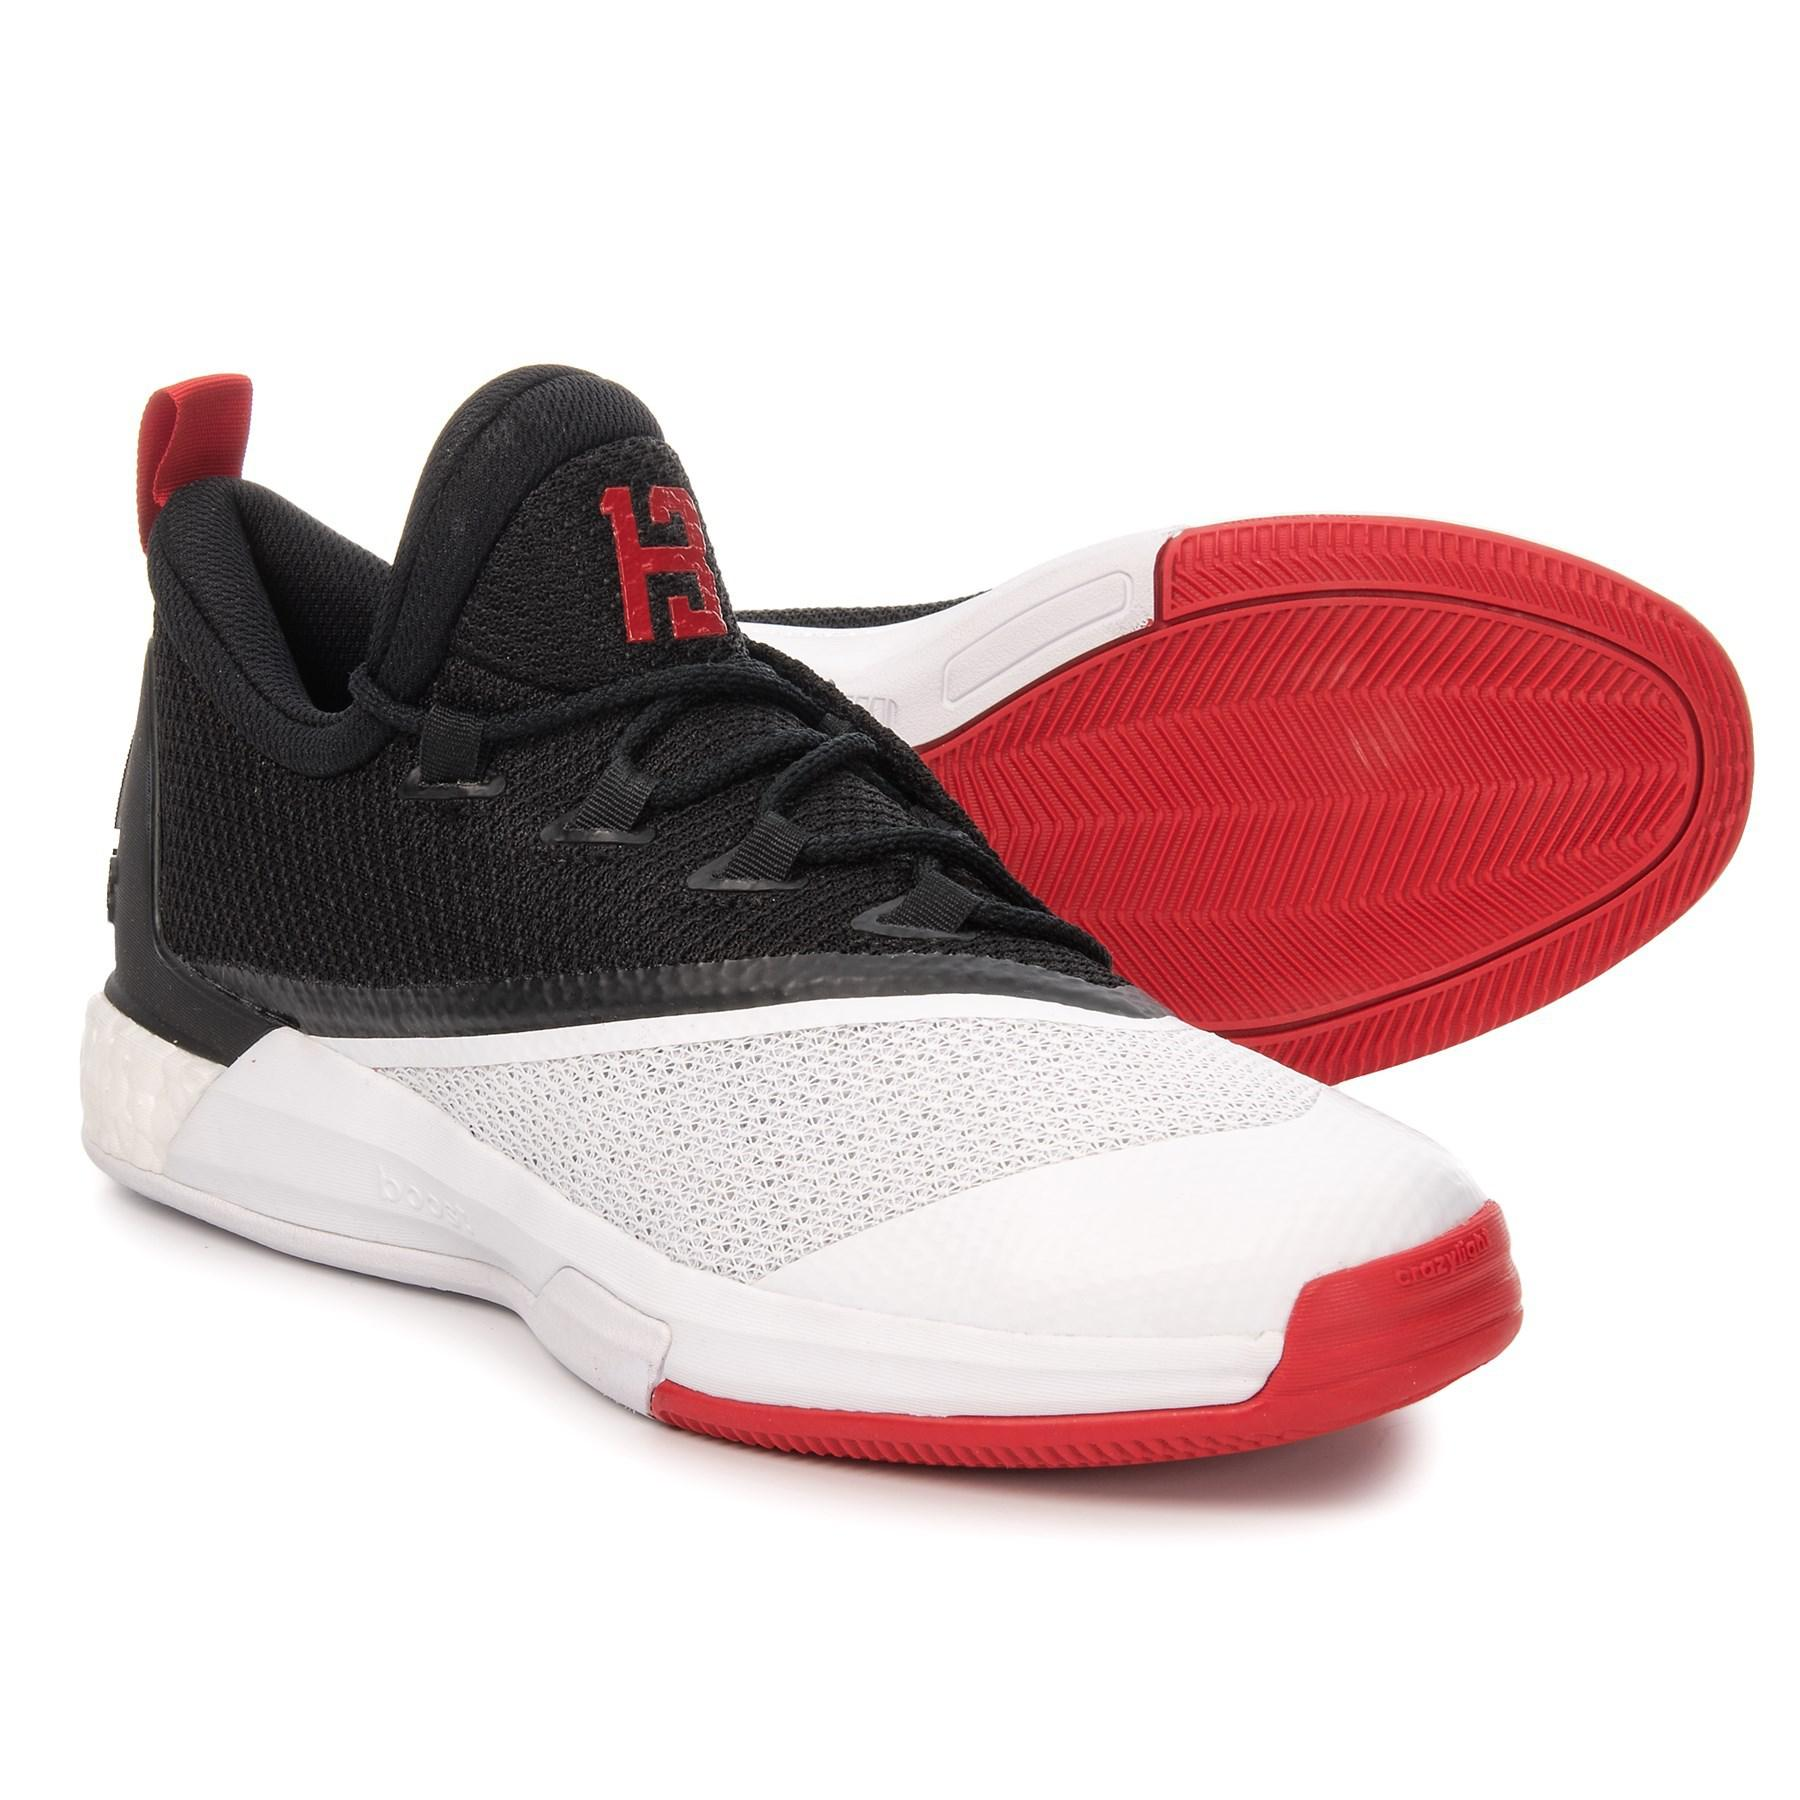 6f998f8ab60 Lyst - adidas Crazylight Boost 2.5 Low Basketball Shoes (for Men) in ...